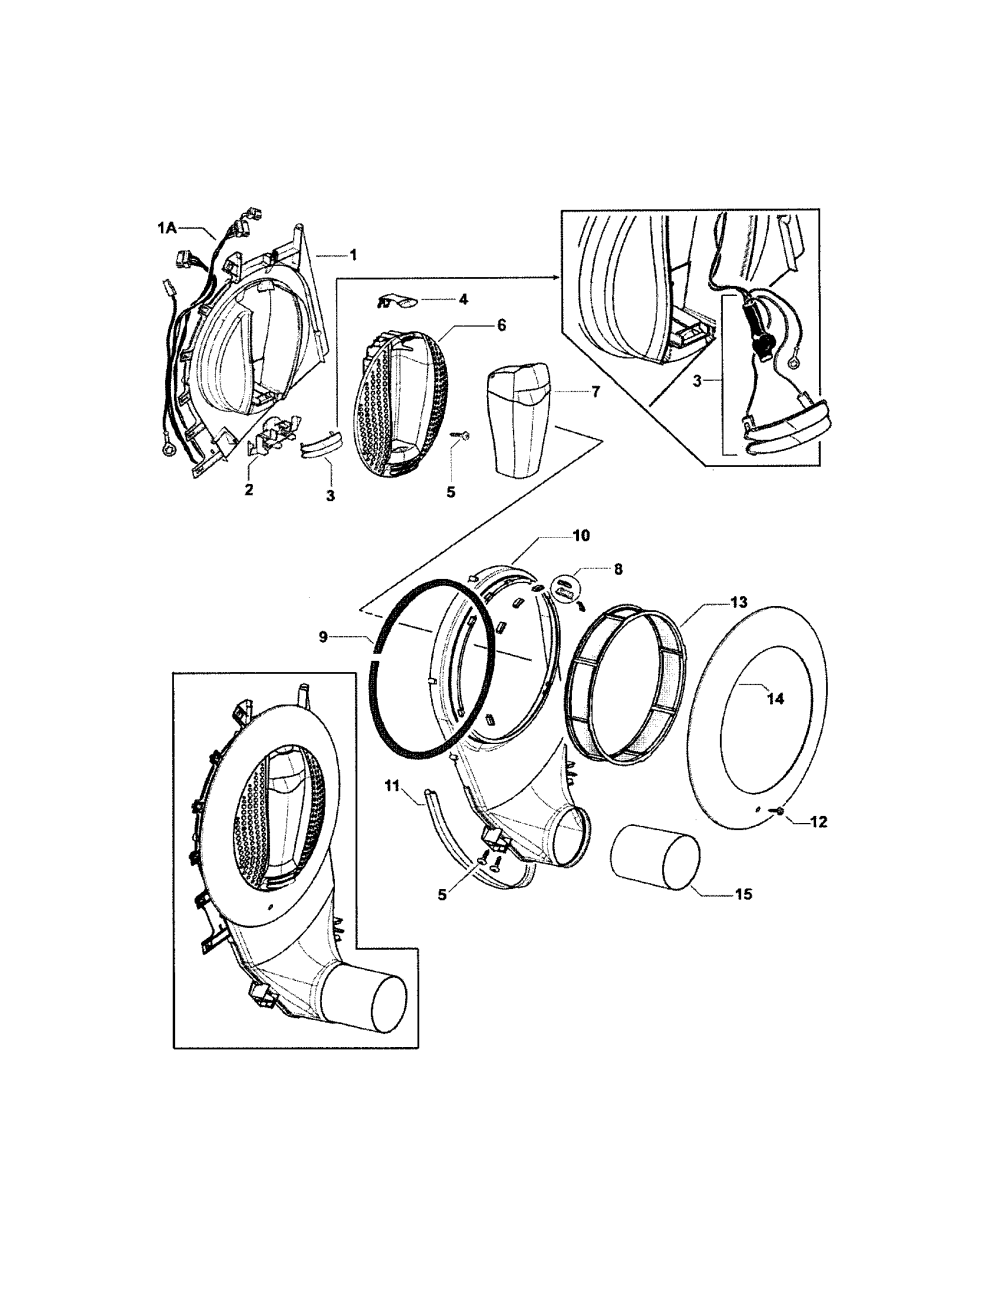 medium resolution of fisher paykel dggx1 96011b outlet duct diagram